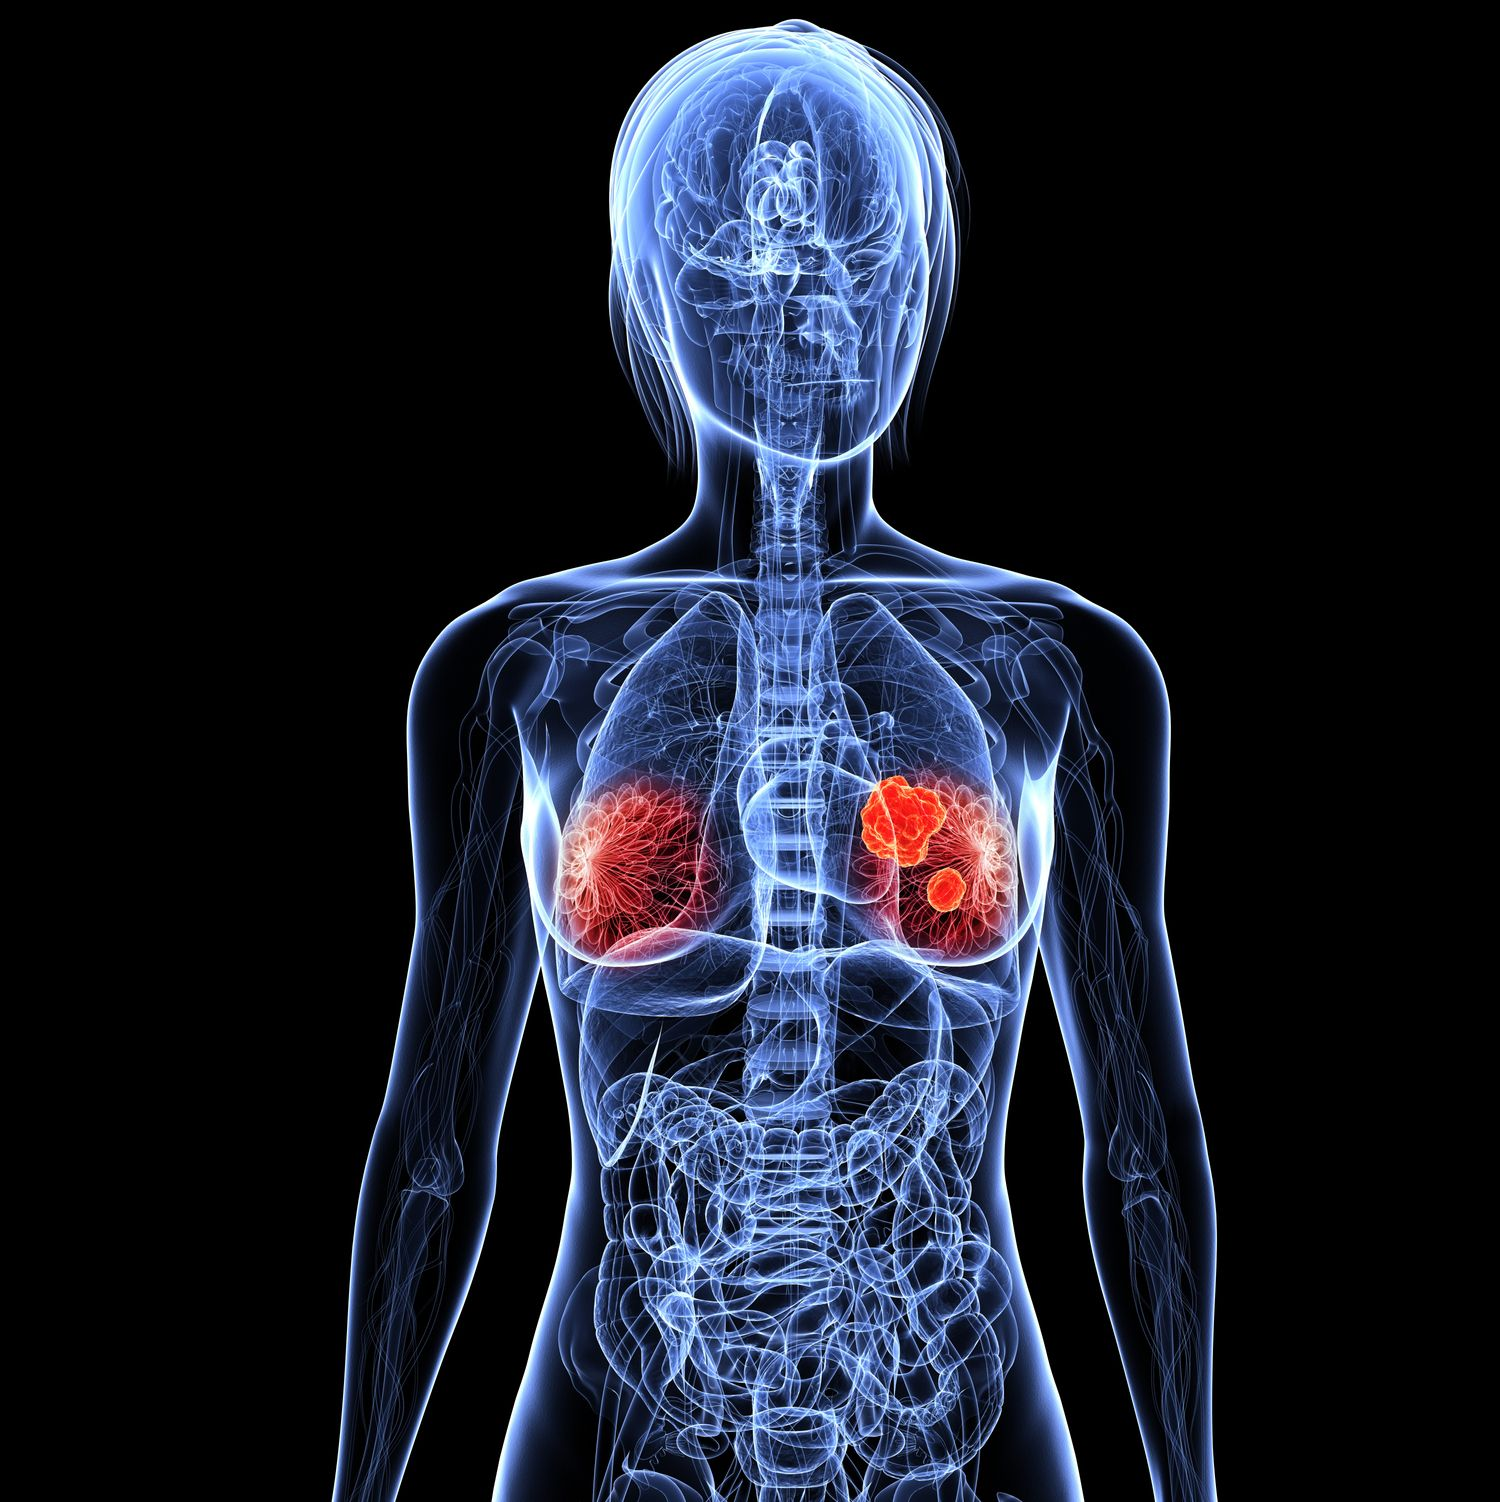 Digital female X-ray in blue with breast cancer tumor in red